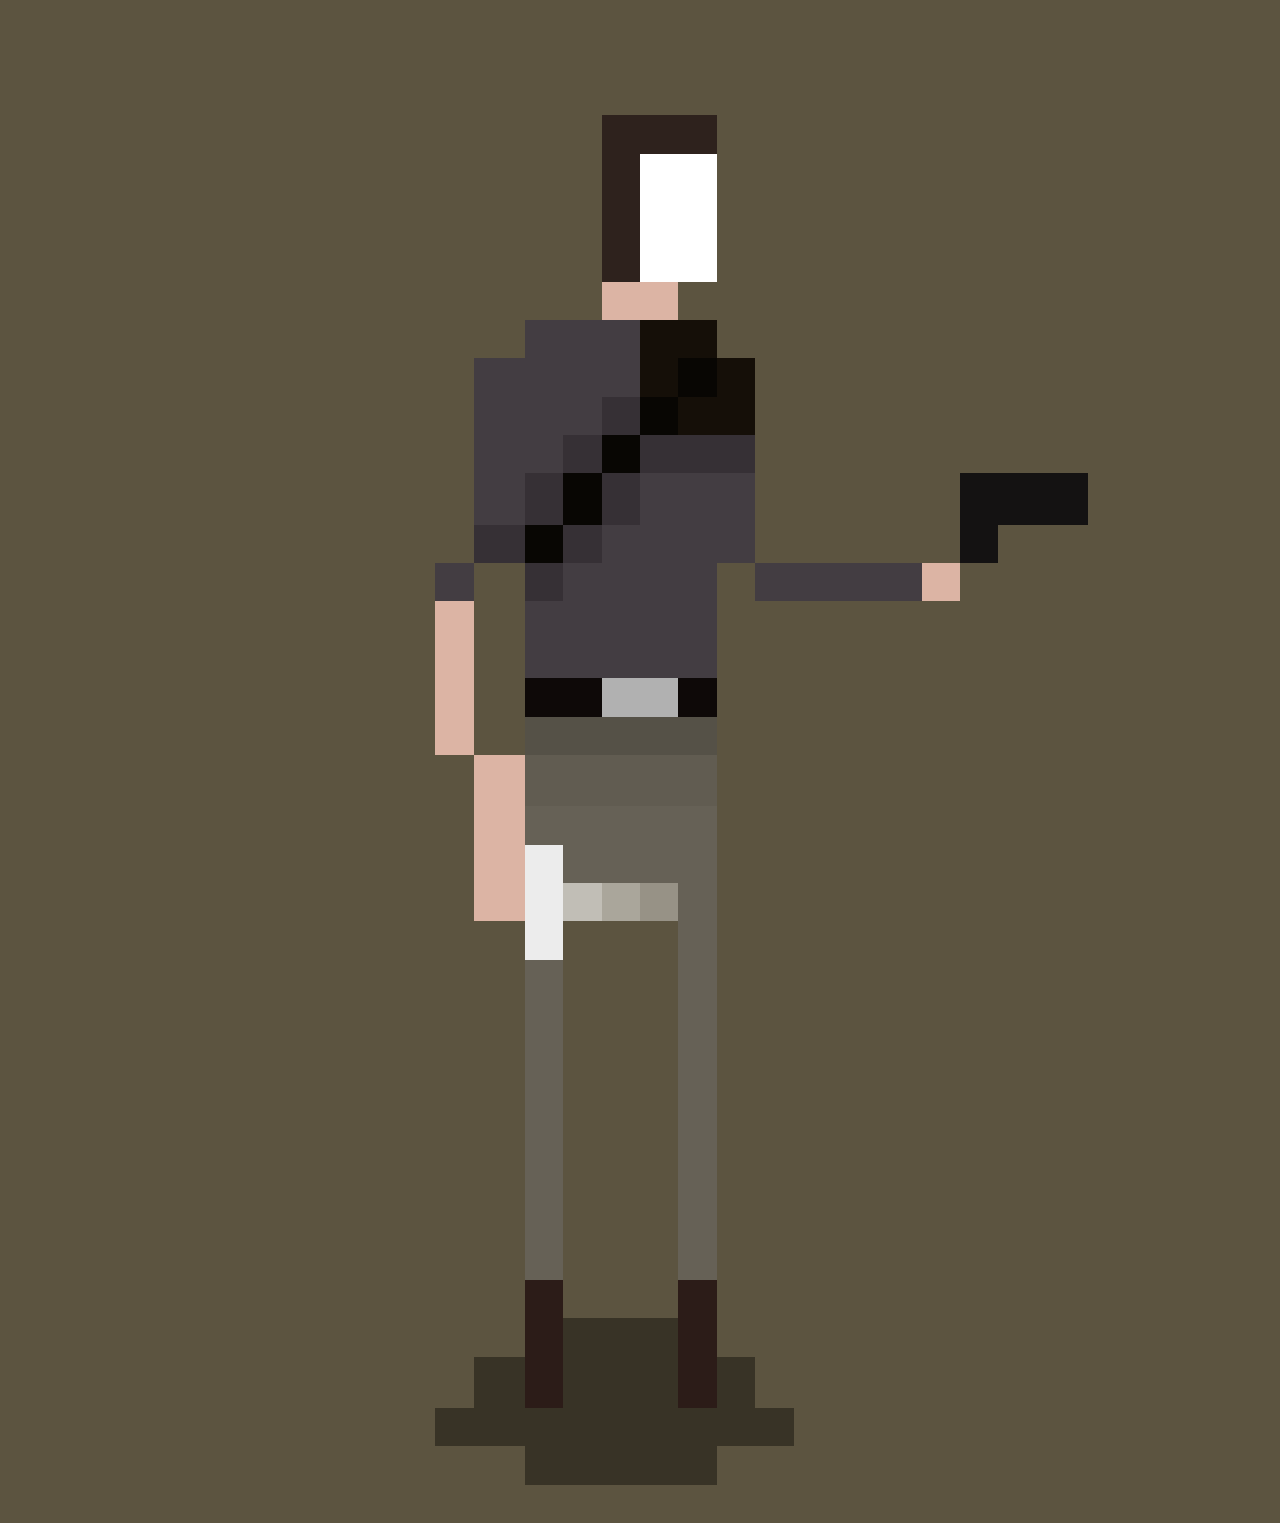 """""""Robber"""" For A Game I'm Making"""